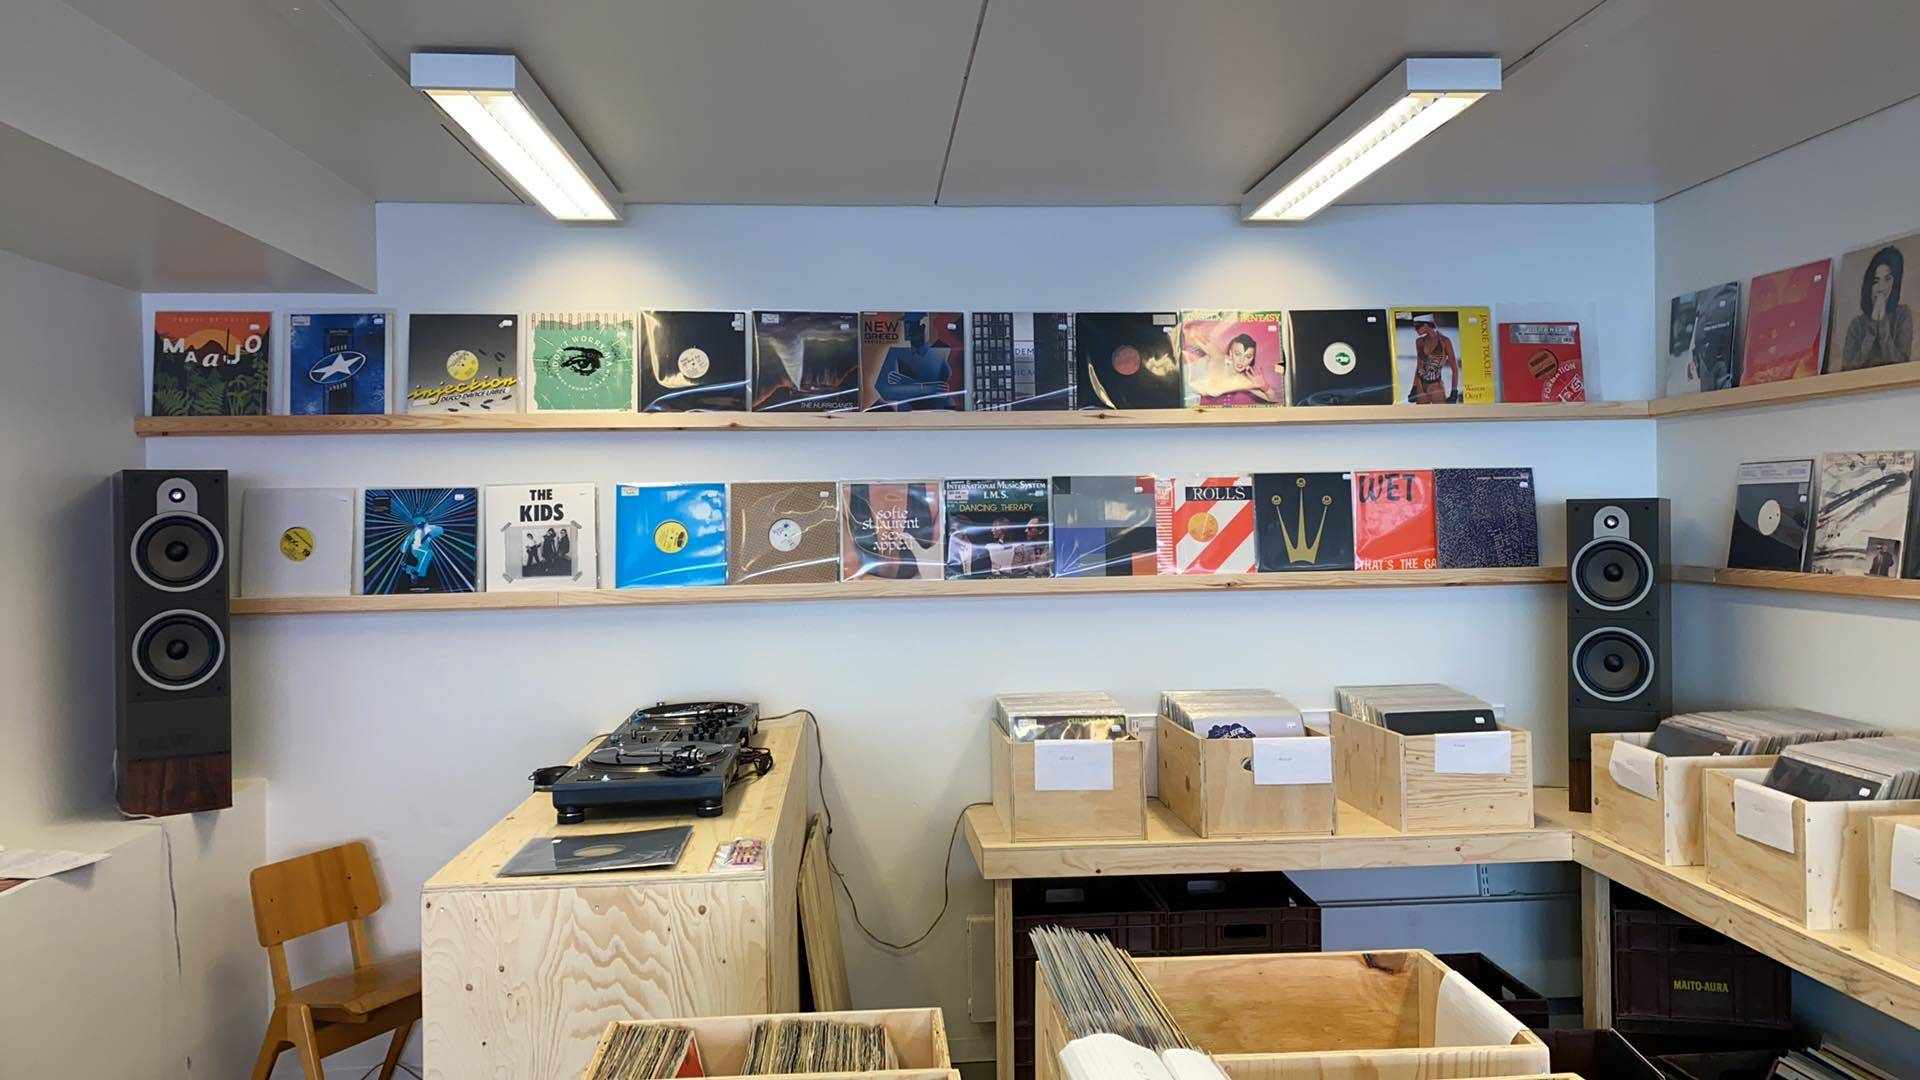 OK Sound Helsink, the new record shop open in Finland